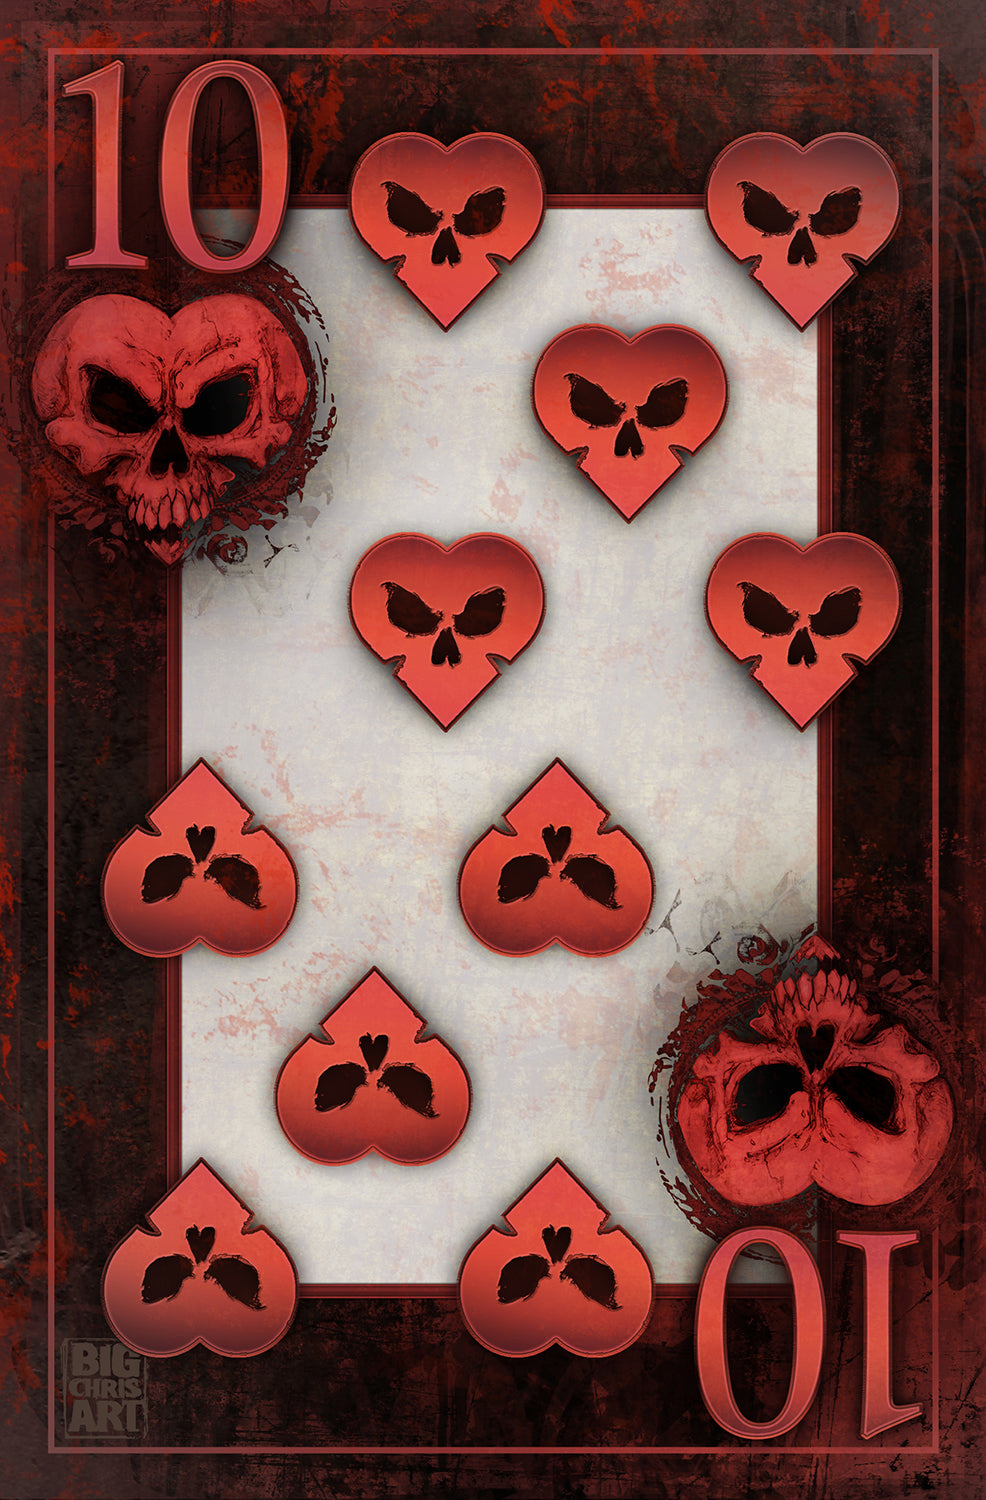 Bad Ace - 10 of Hearts - Canvas